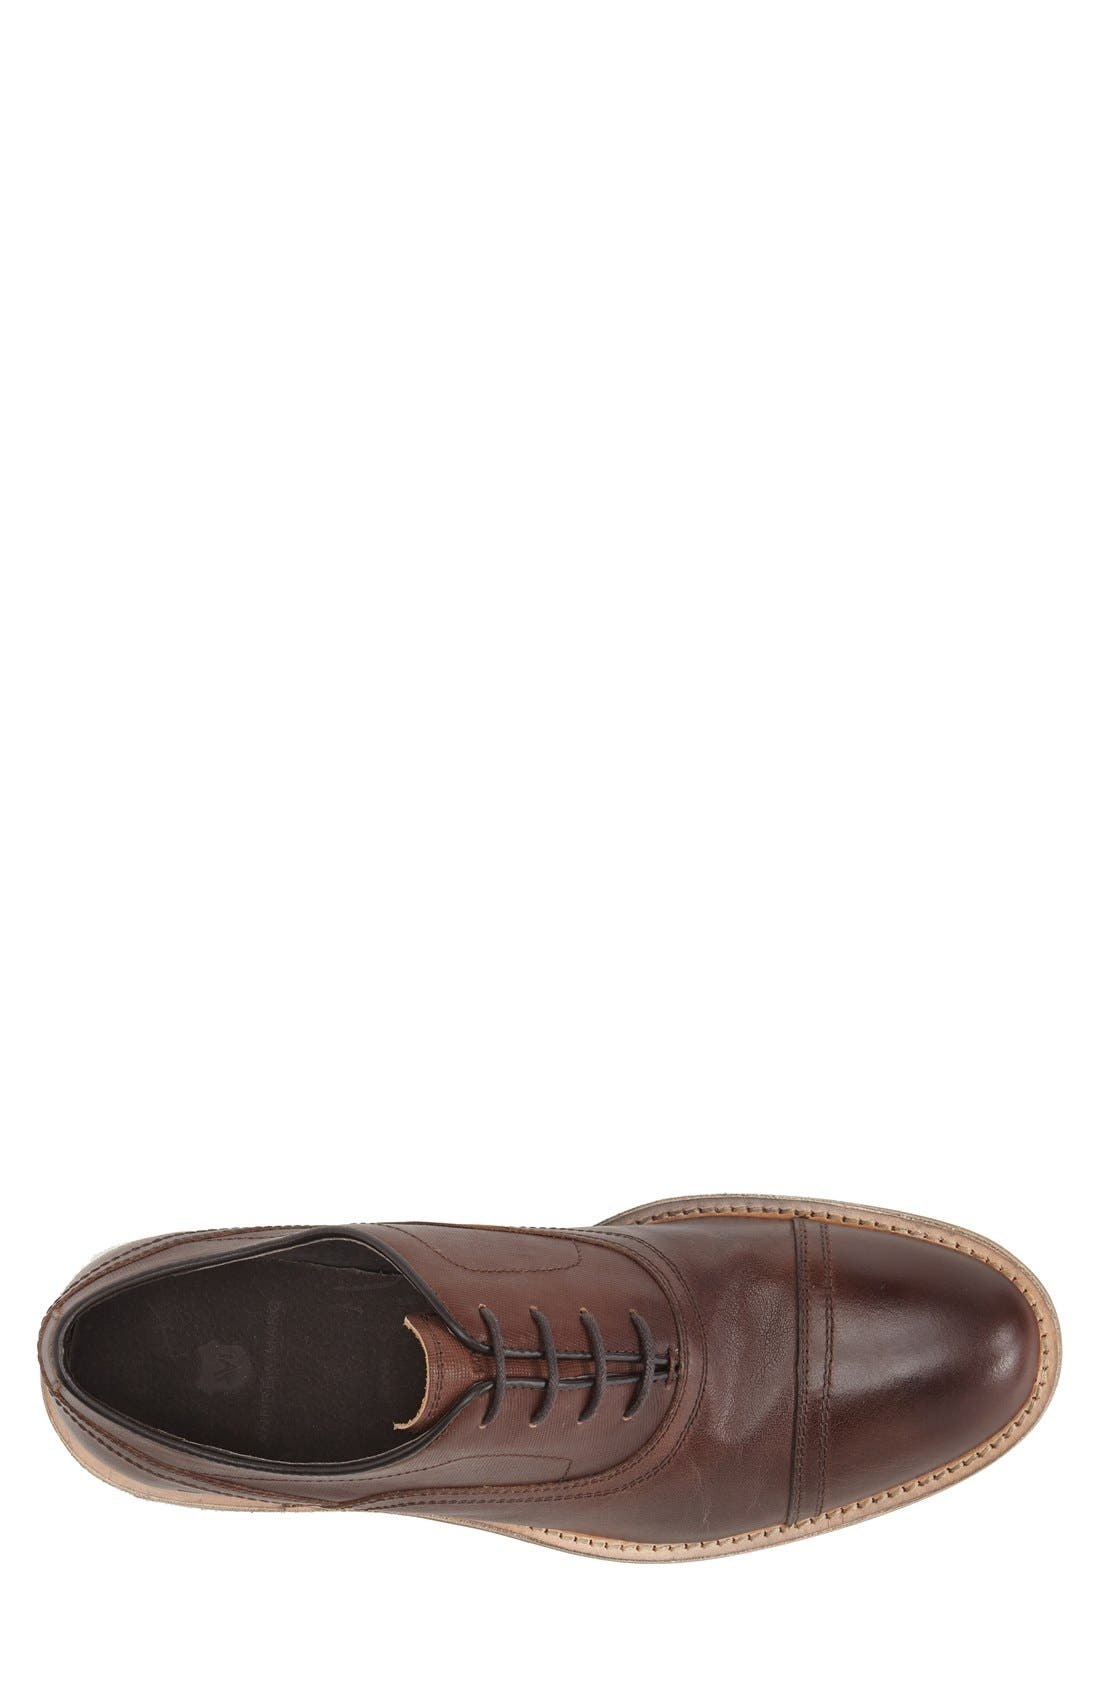 Alternate Image 3  - Andrew Marc 'Henry' Cap Toe Oxford (Men)